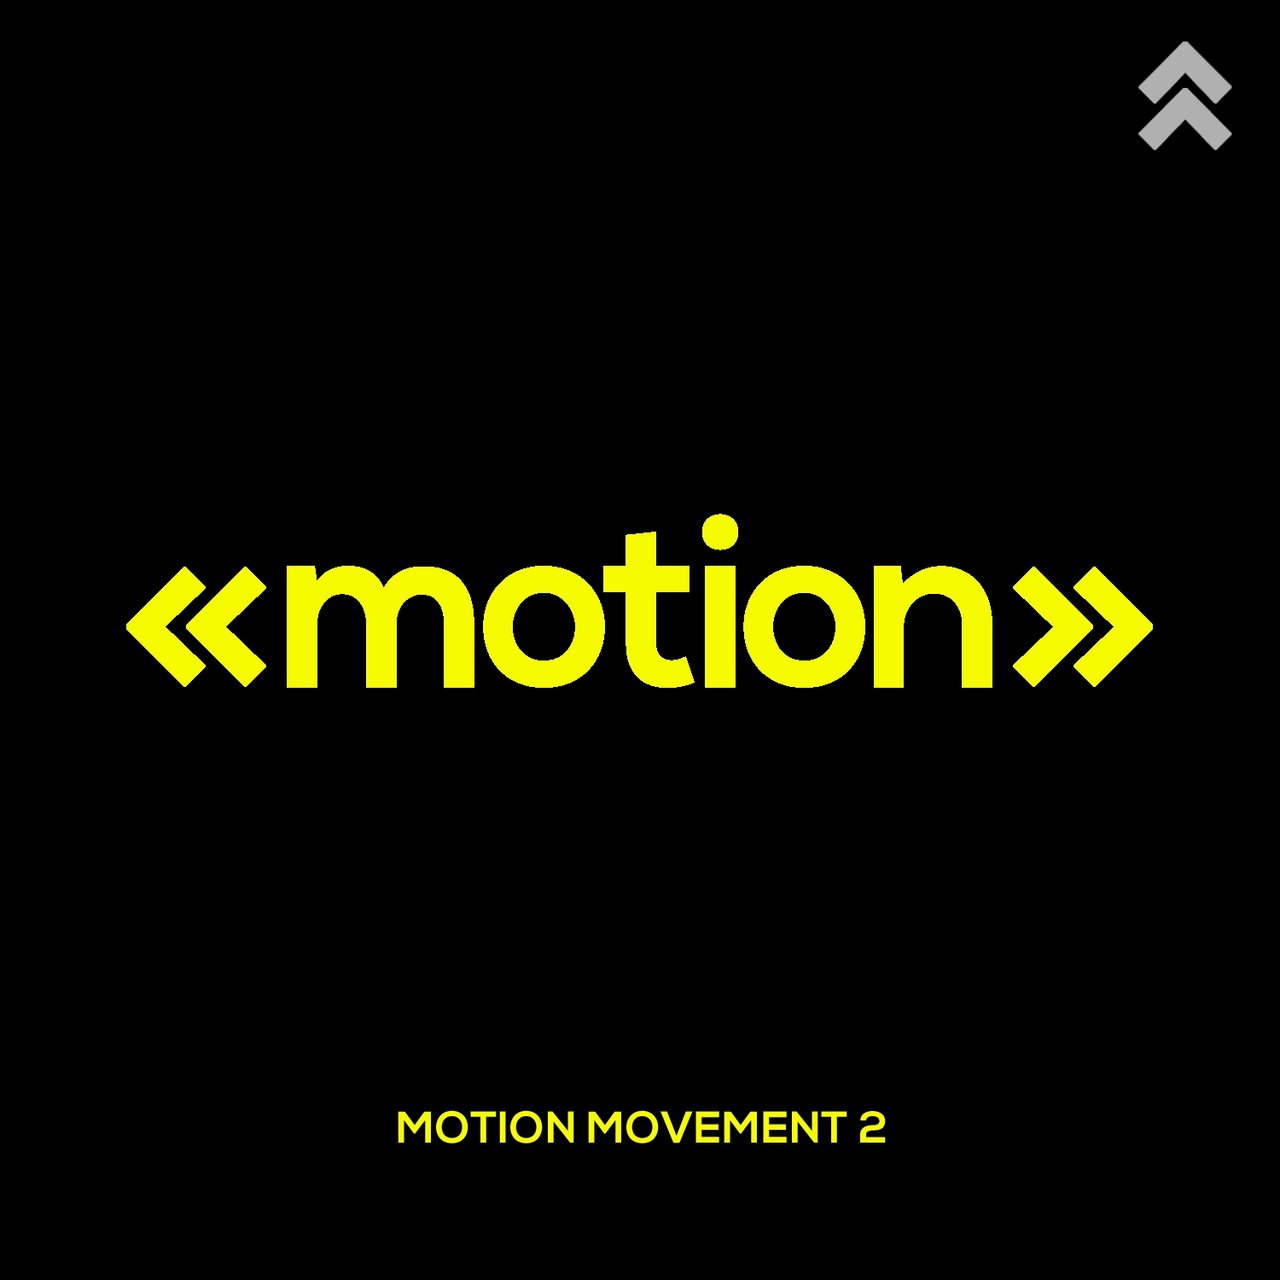 Motion Movement 2